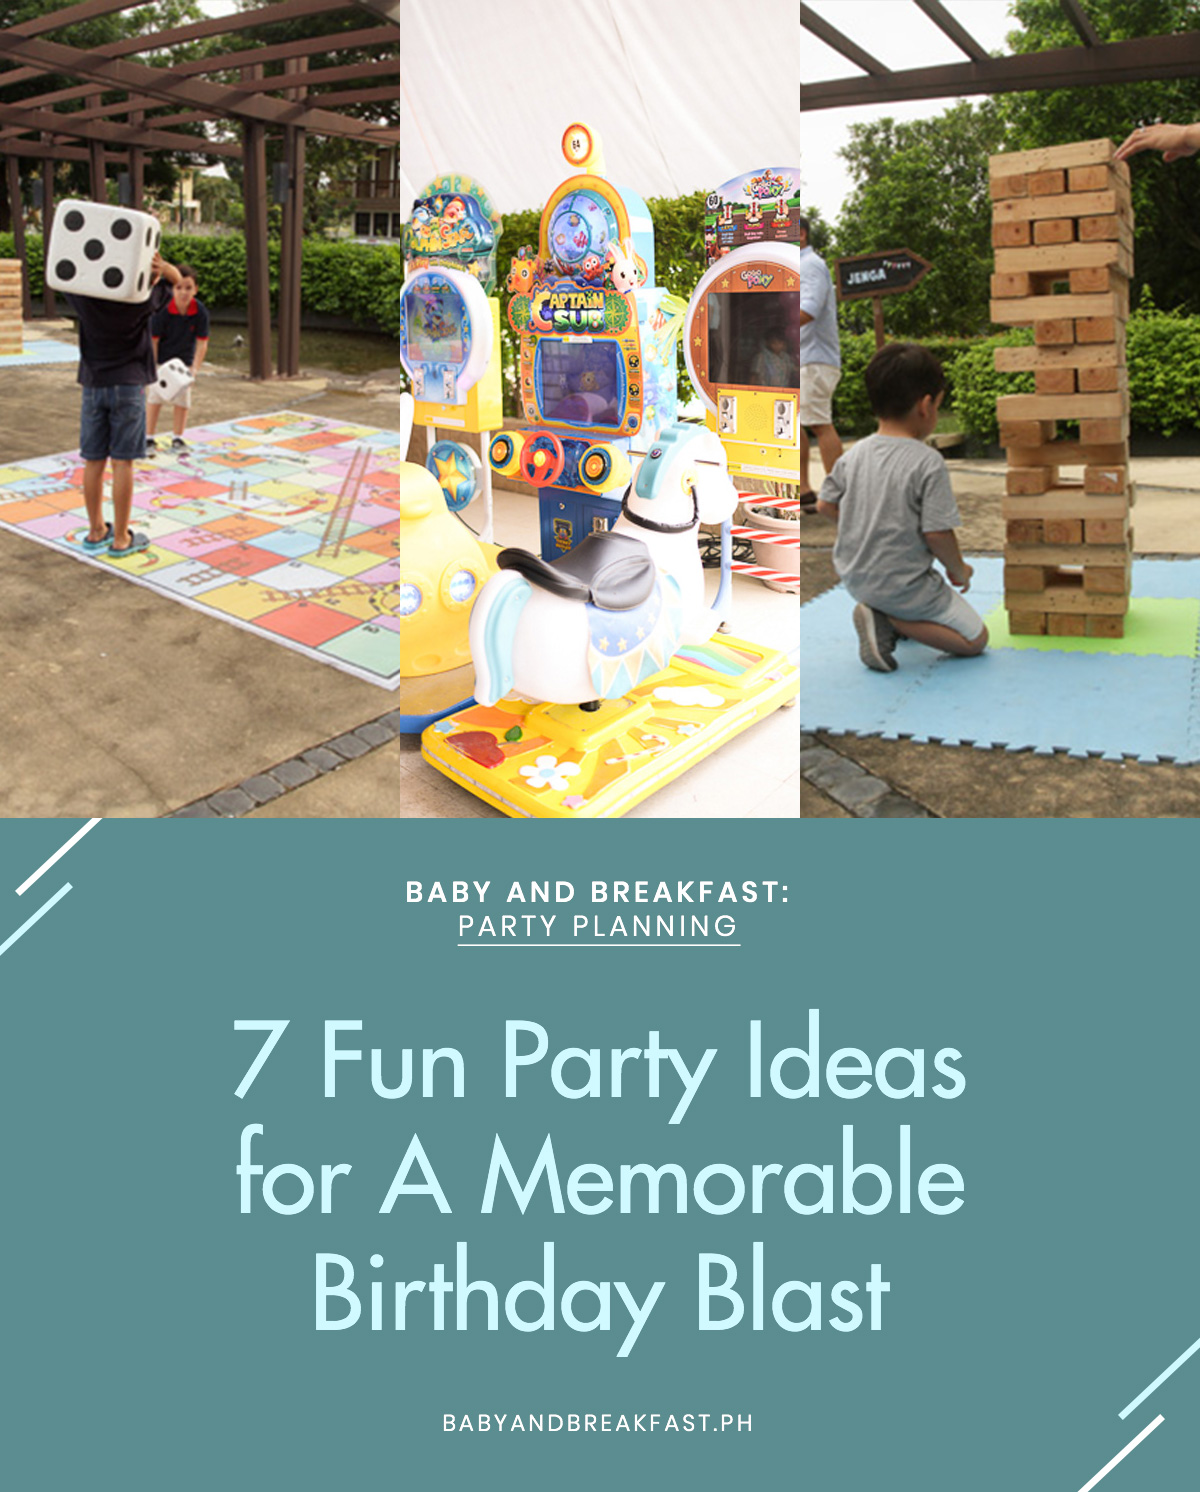 Baby and Breakfast: Party Planning 7 Fun Party Ideas for A Memorable Birthday Blast